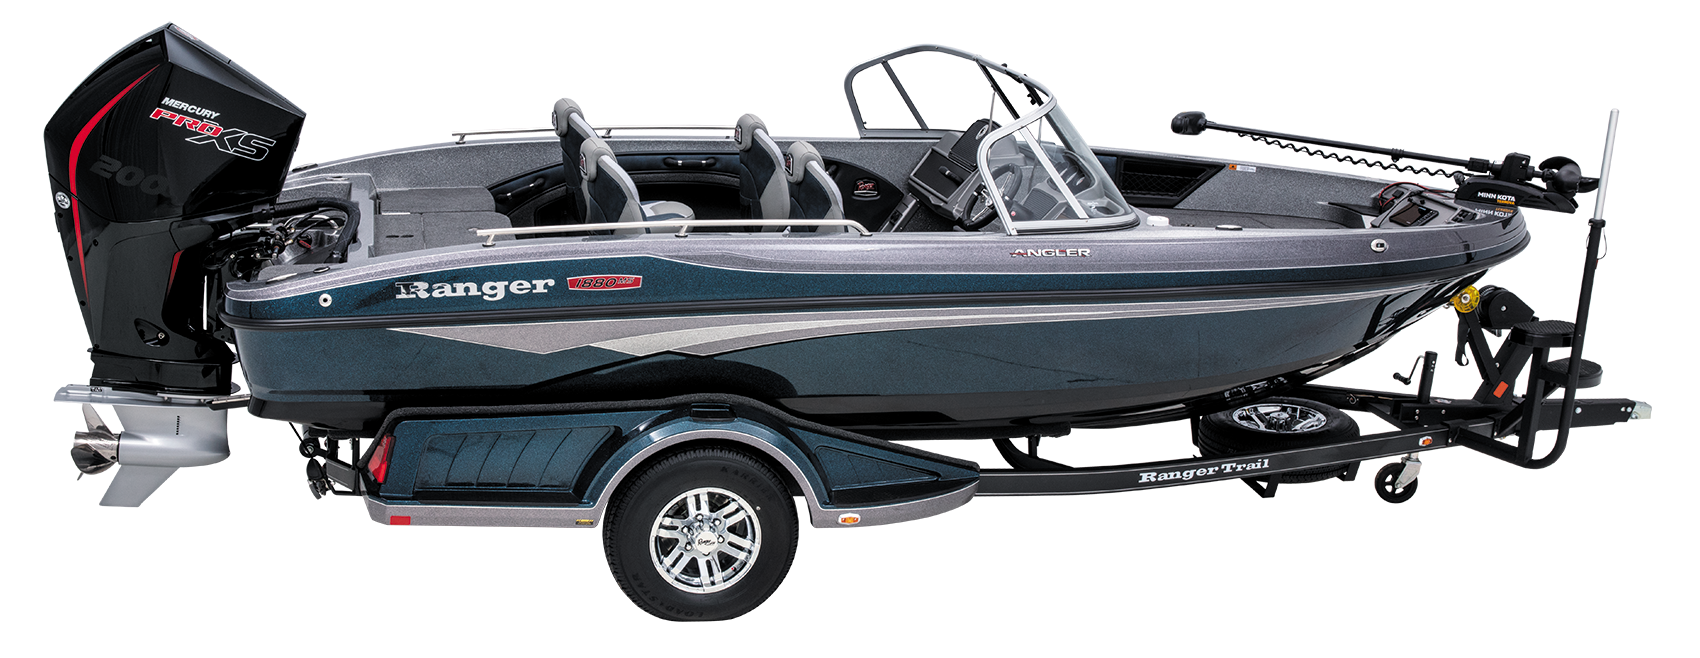 Ranger 1880MS multi species deep v walleye boat